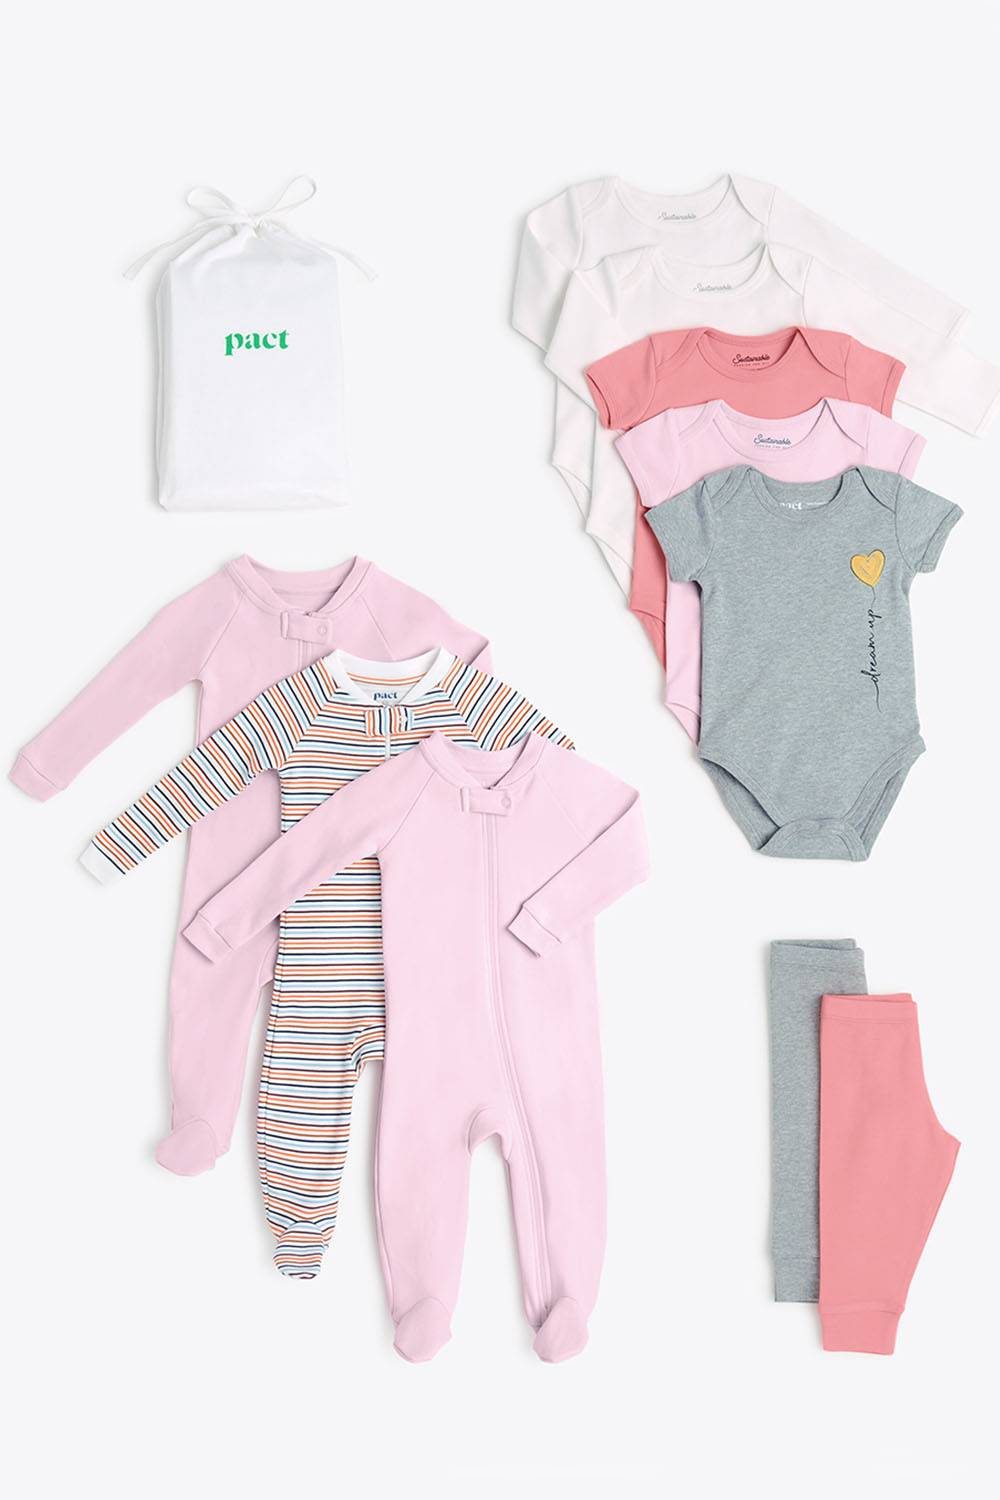 pact baby clothes not made in china